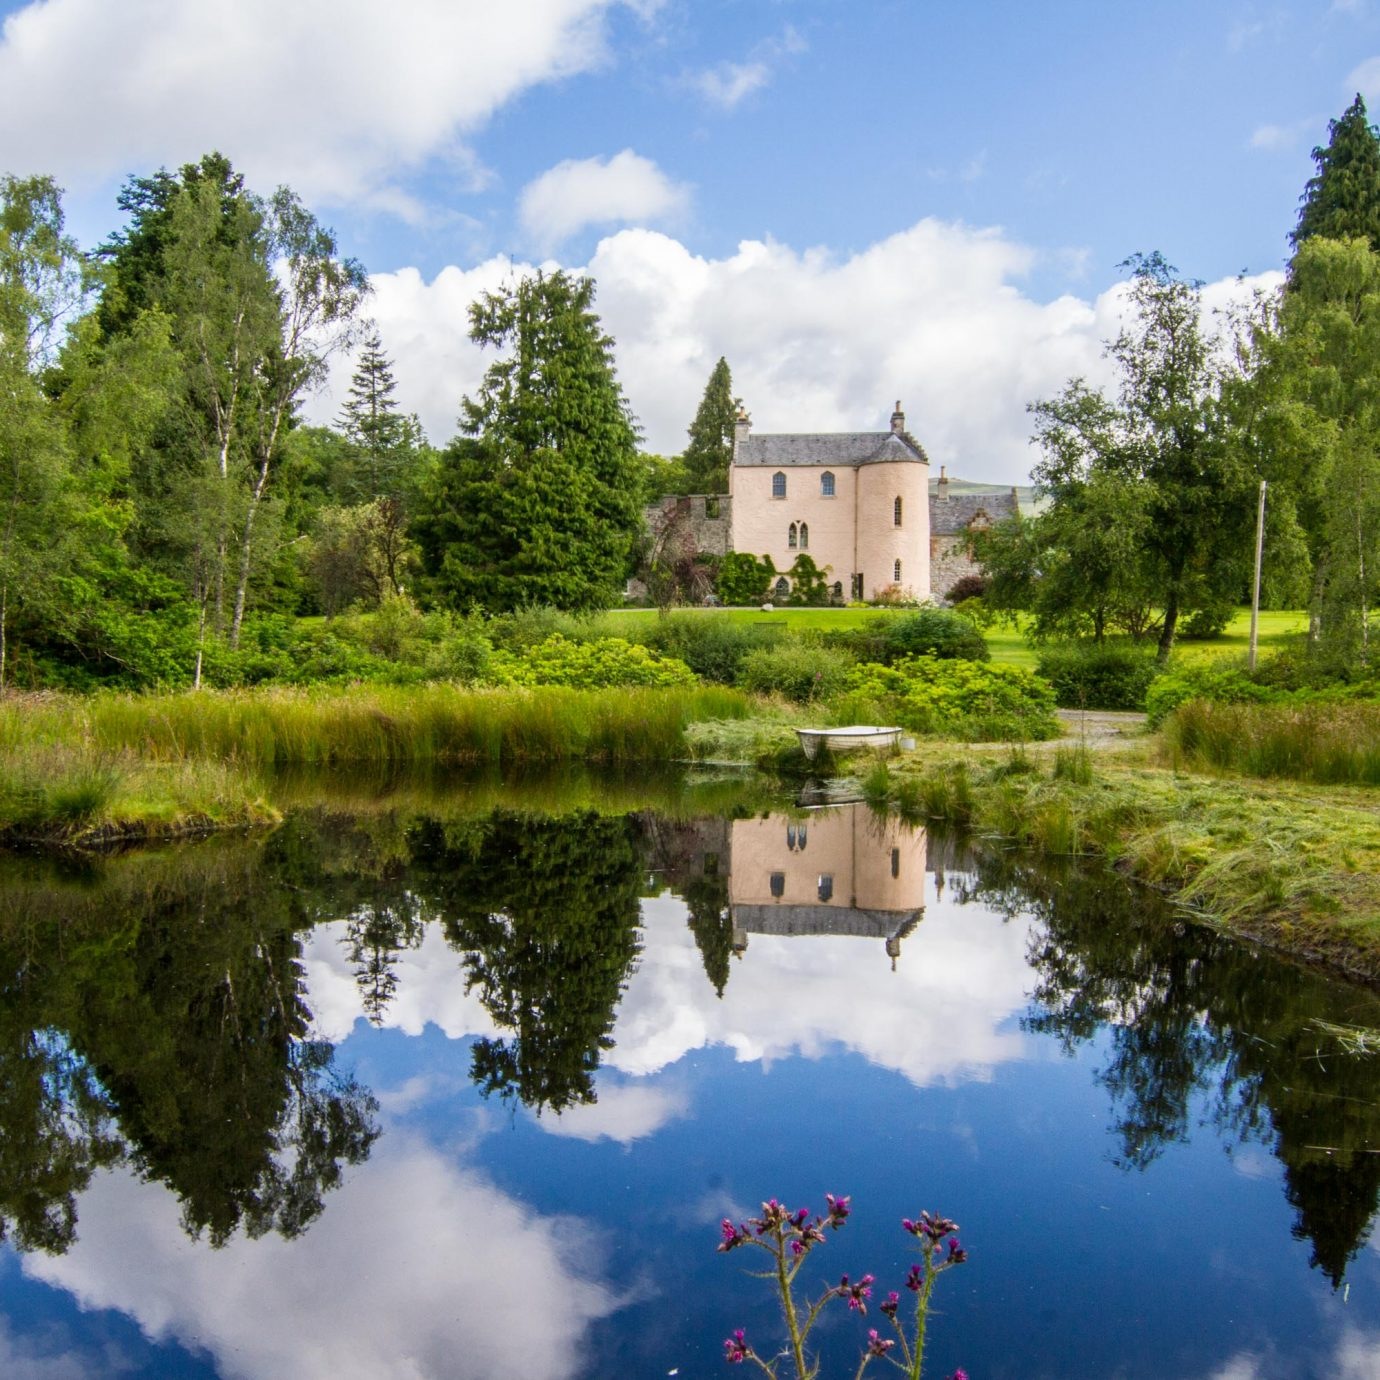 View of Duchray Castle in Scotland